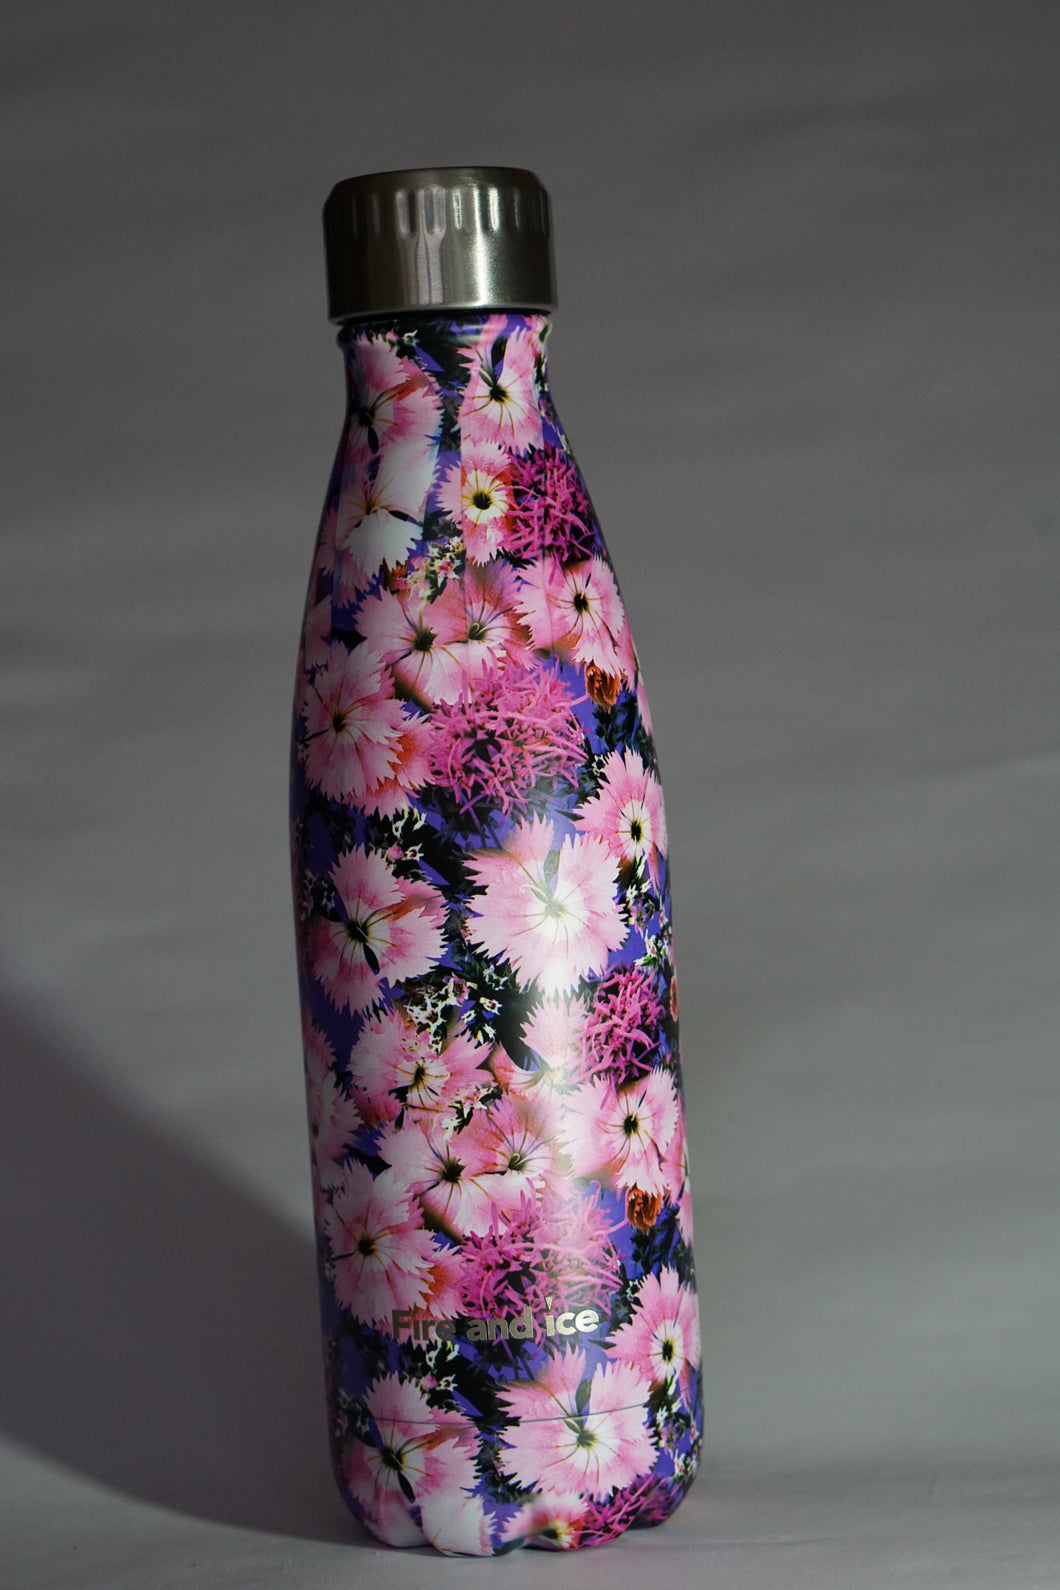 Pink Petals - Fire and Ice bottles. Reusable bottle. BPA free. cool designs